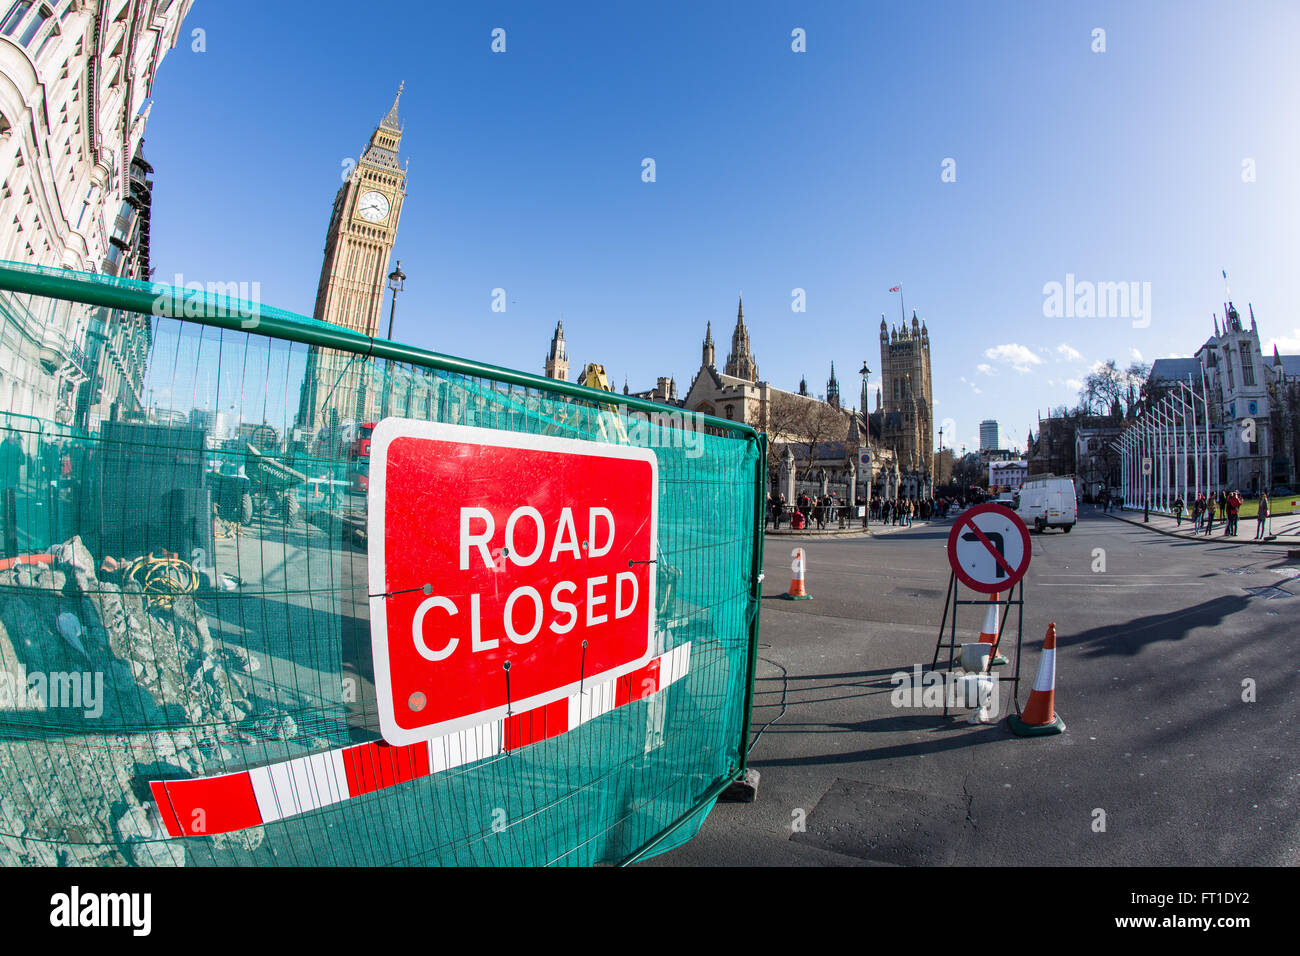 Road closed sign in front of Westminster, The Houses of Parliament and Big Ben - Stock Image